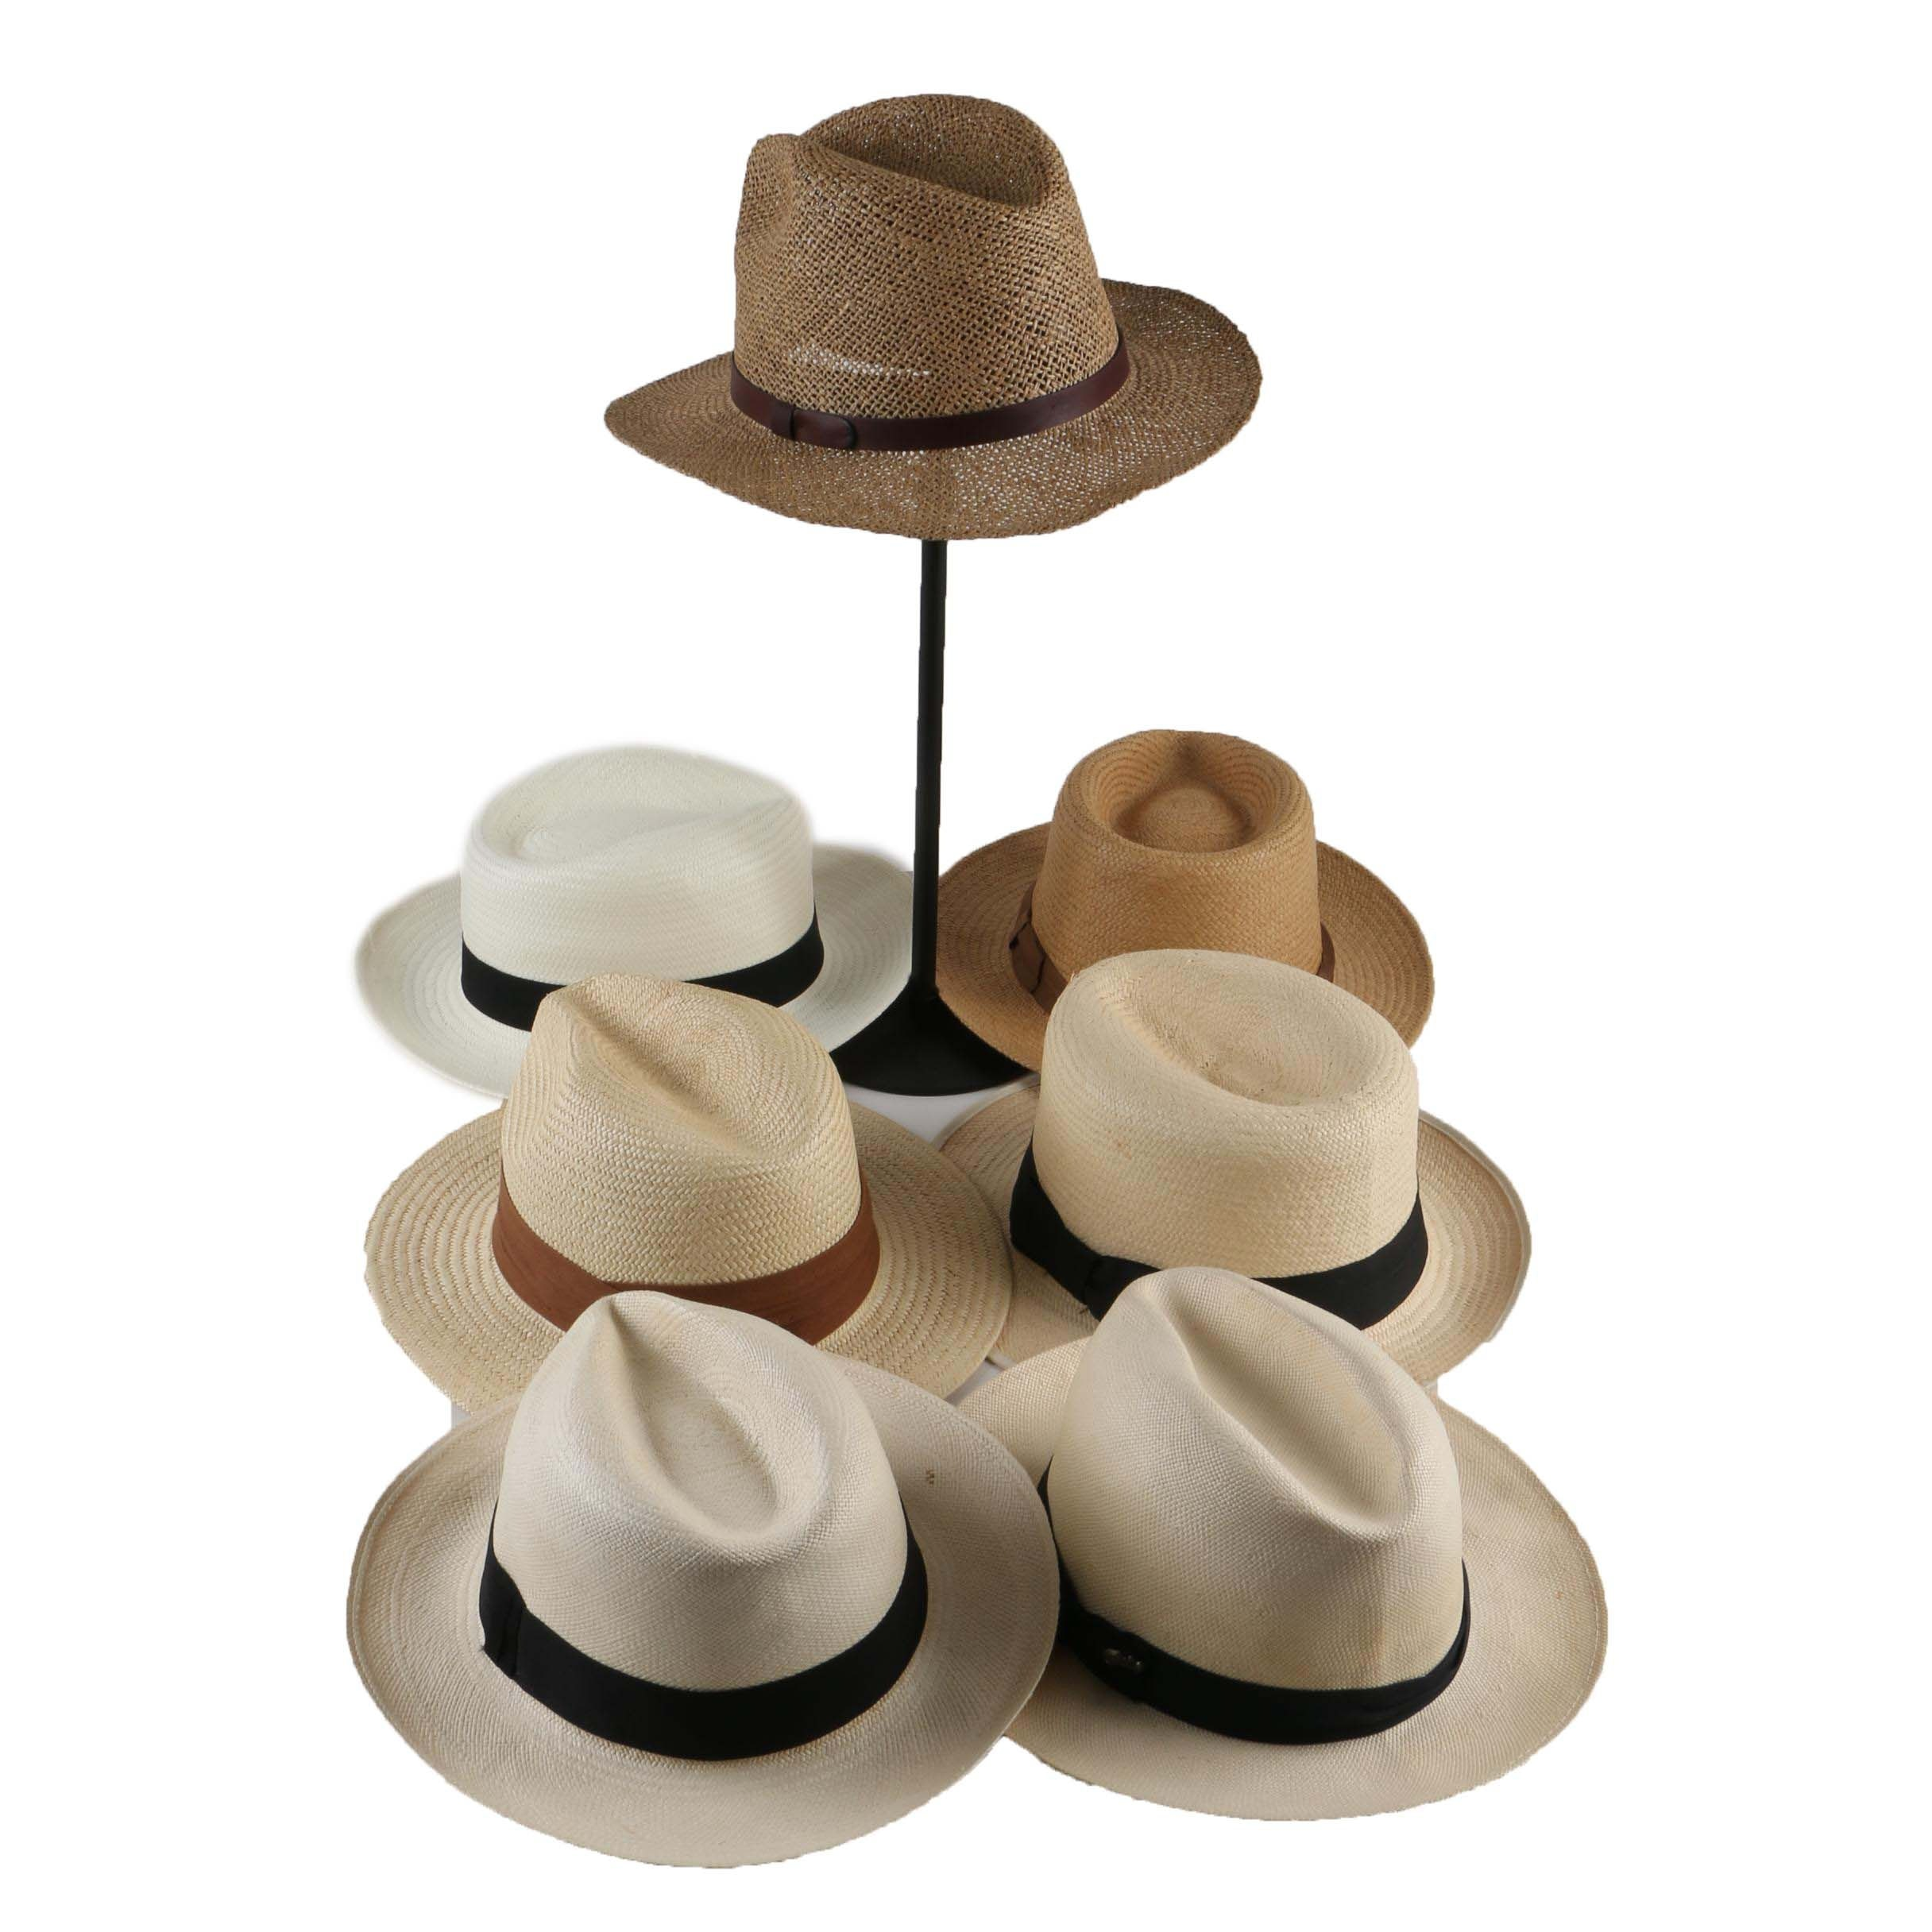 Men's Woven Straw and Panama Style Hats Including Bailey and Marks & Spencer